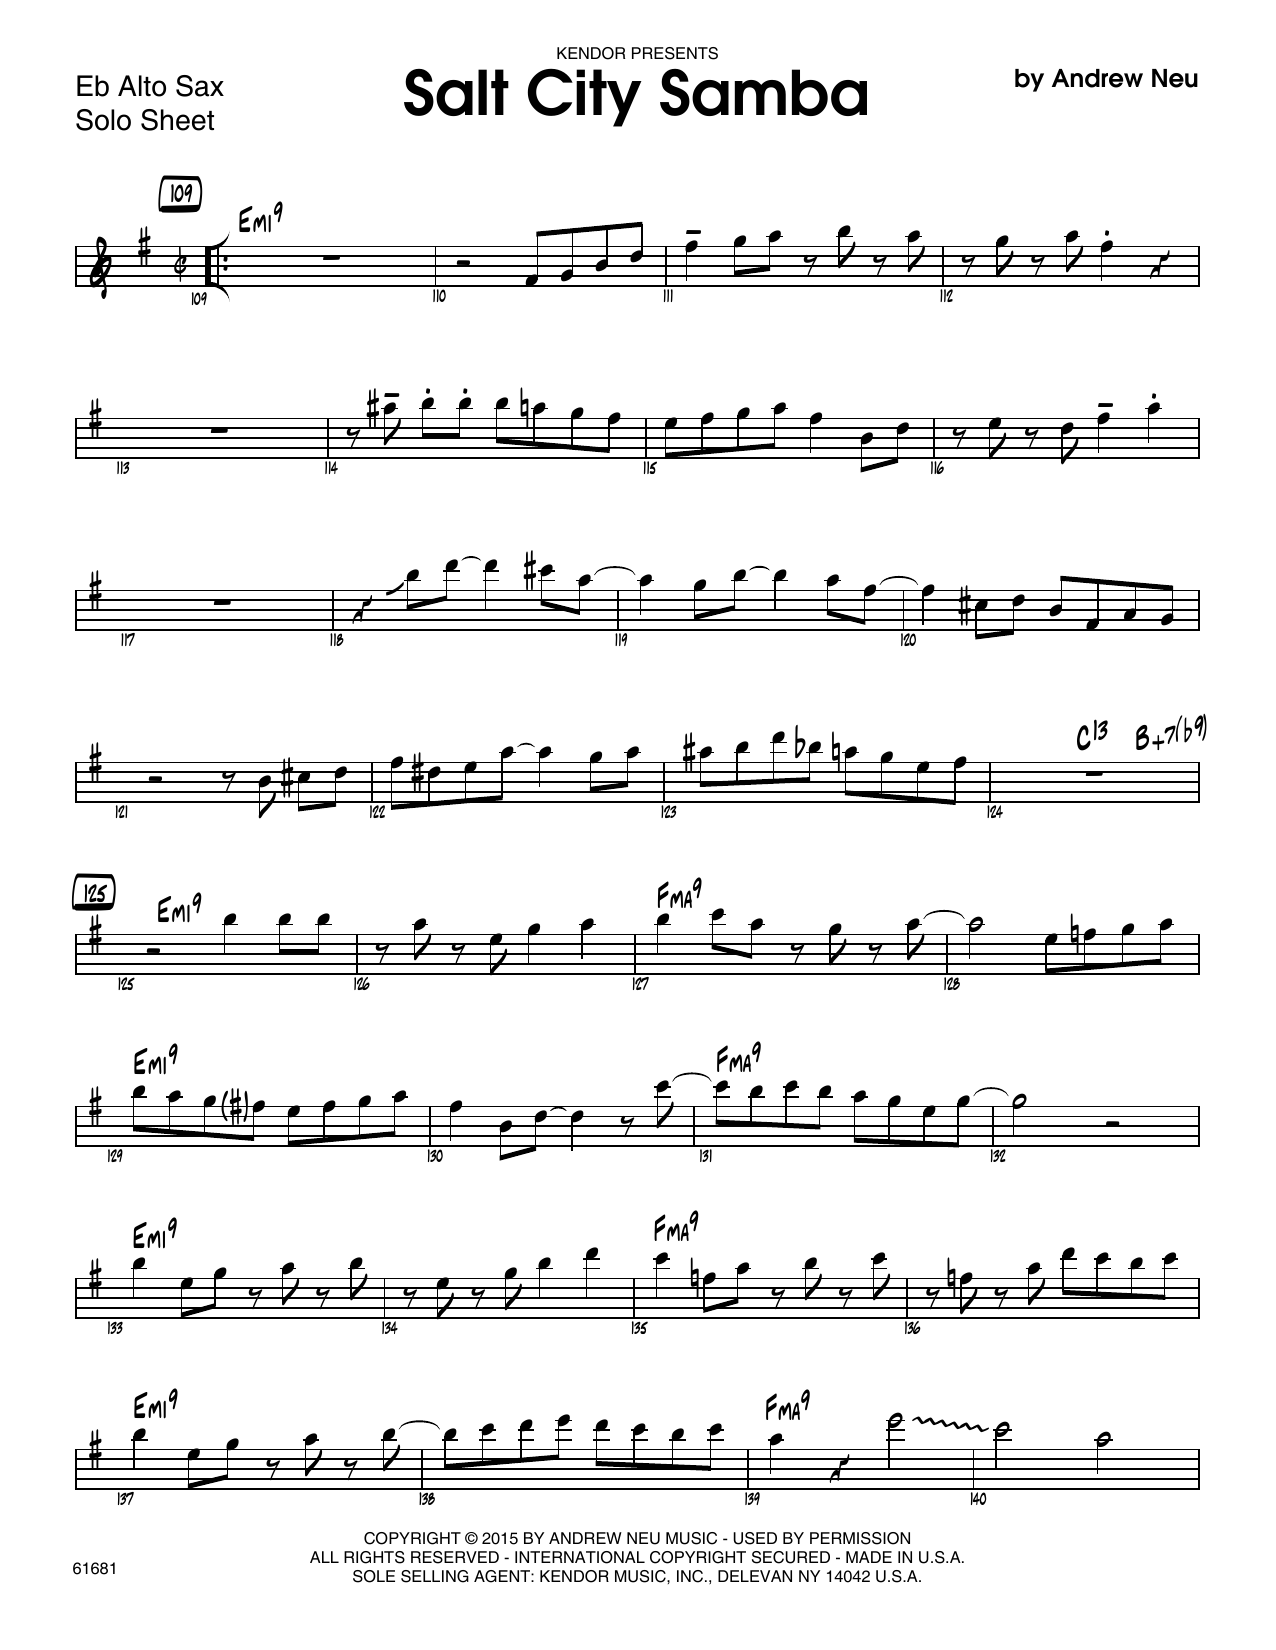 Salt City Samba - Solo Sheet - Alto Sax